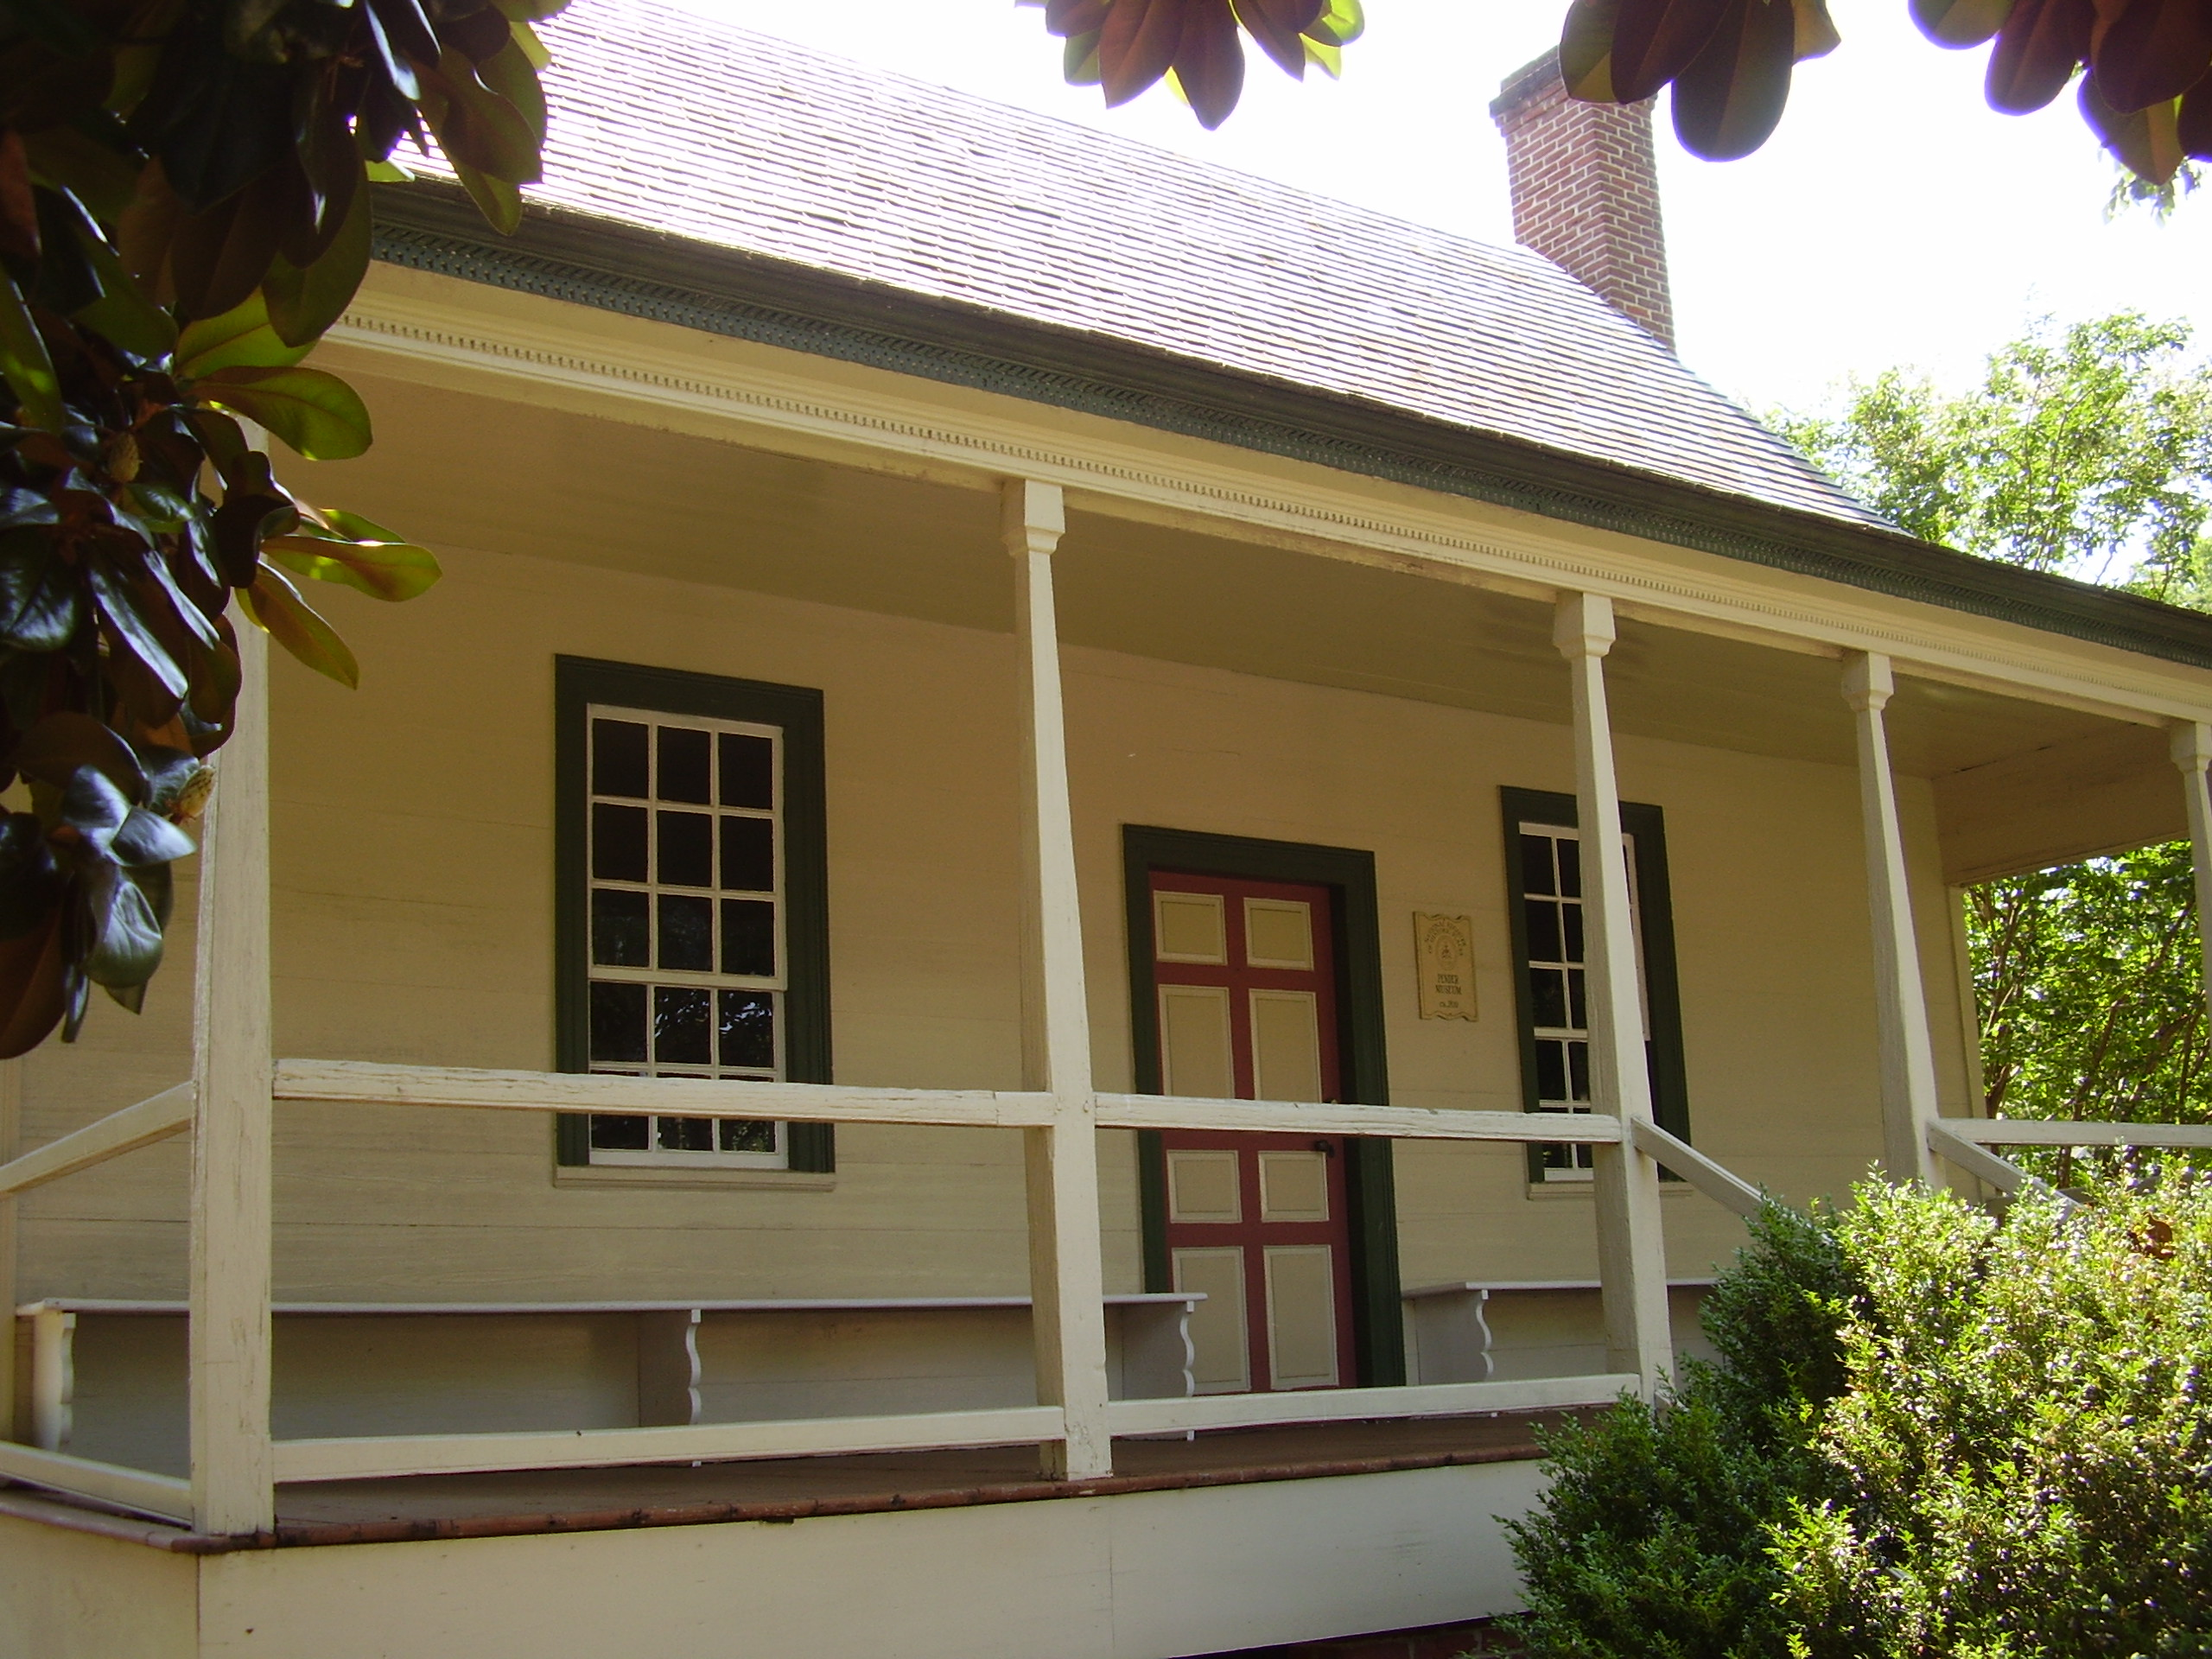 The front entry of the house features original porch posts and benches on the front porch which served as a work area for some activities such as shelling beans or shucking corn.